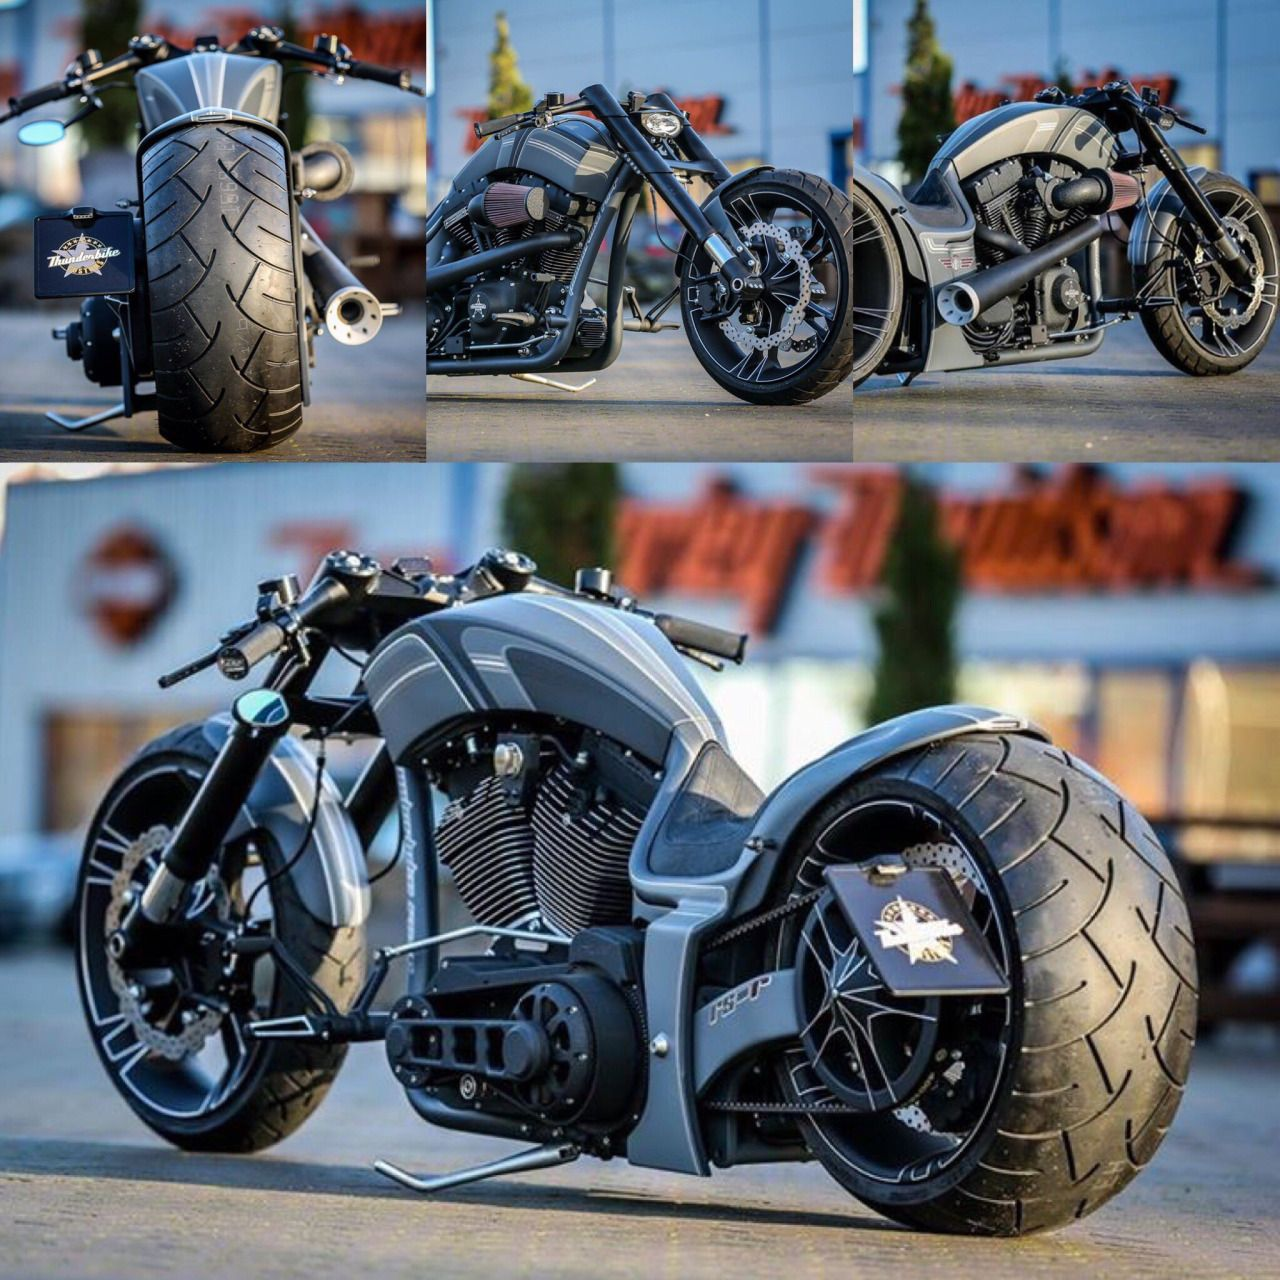 Supercharger For Harley V Rod: NoLimitCustom QuotDVZquot VRod Motocicleta Motor Y Motos